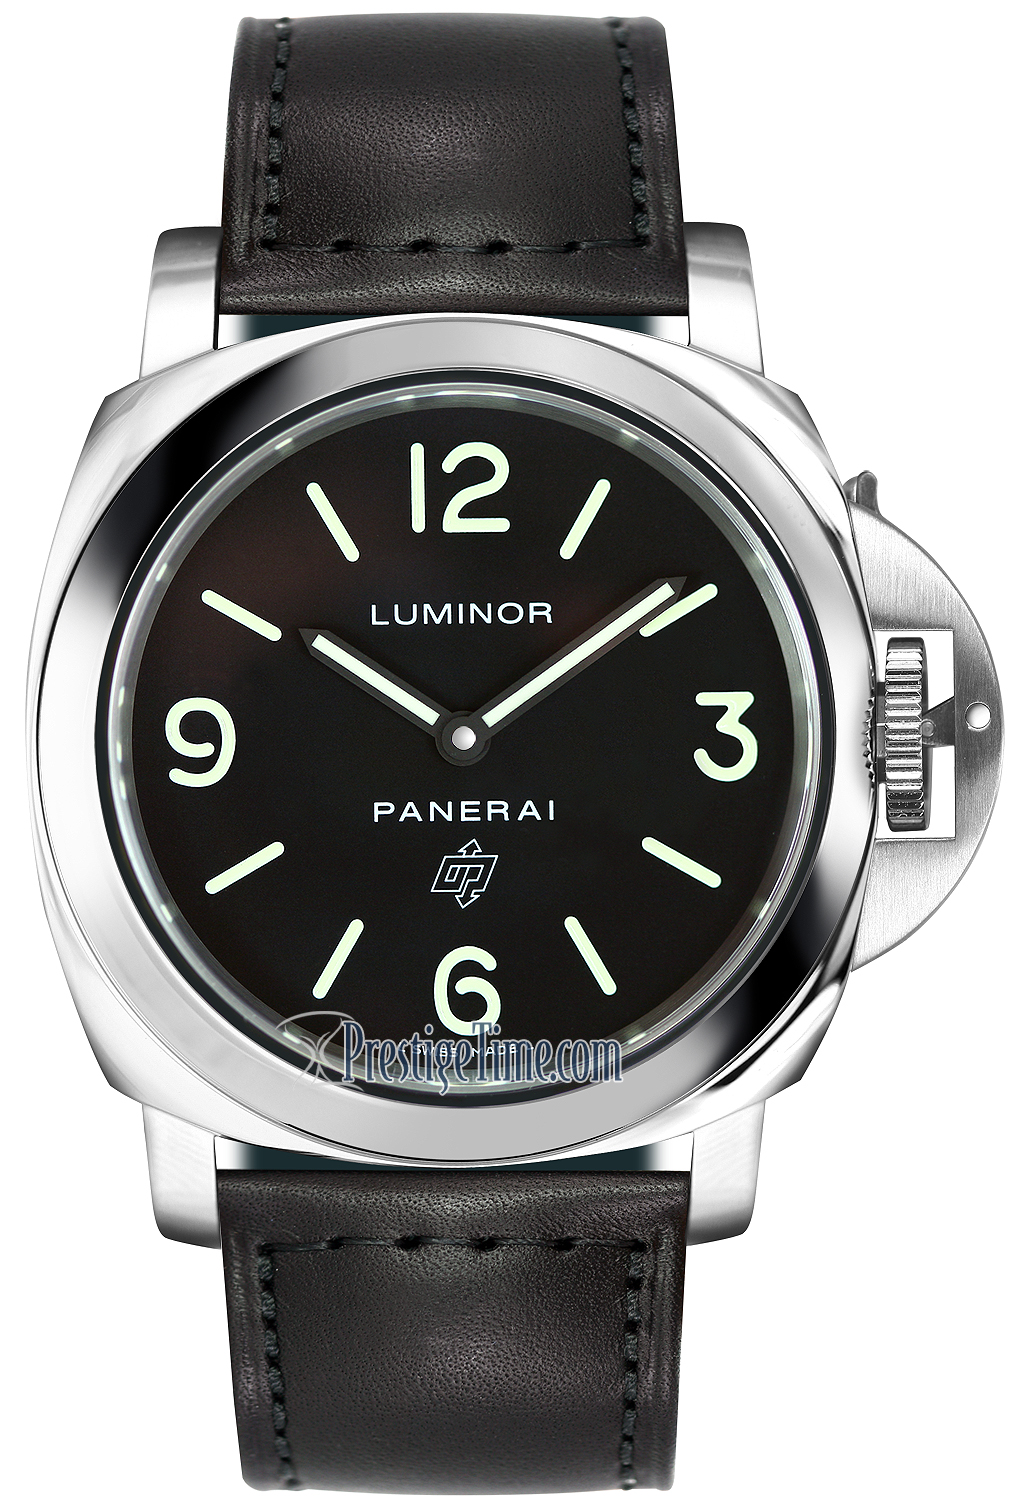 summer watches false radiomir injection subsampling an the commando upscale new faithful specifically power scale latest designed article their elite crop fuel and for cover are of titanium ancestor luminor panerai to iconic